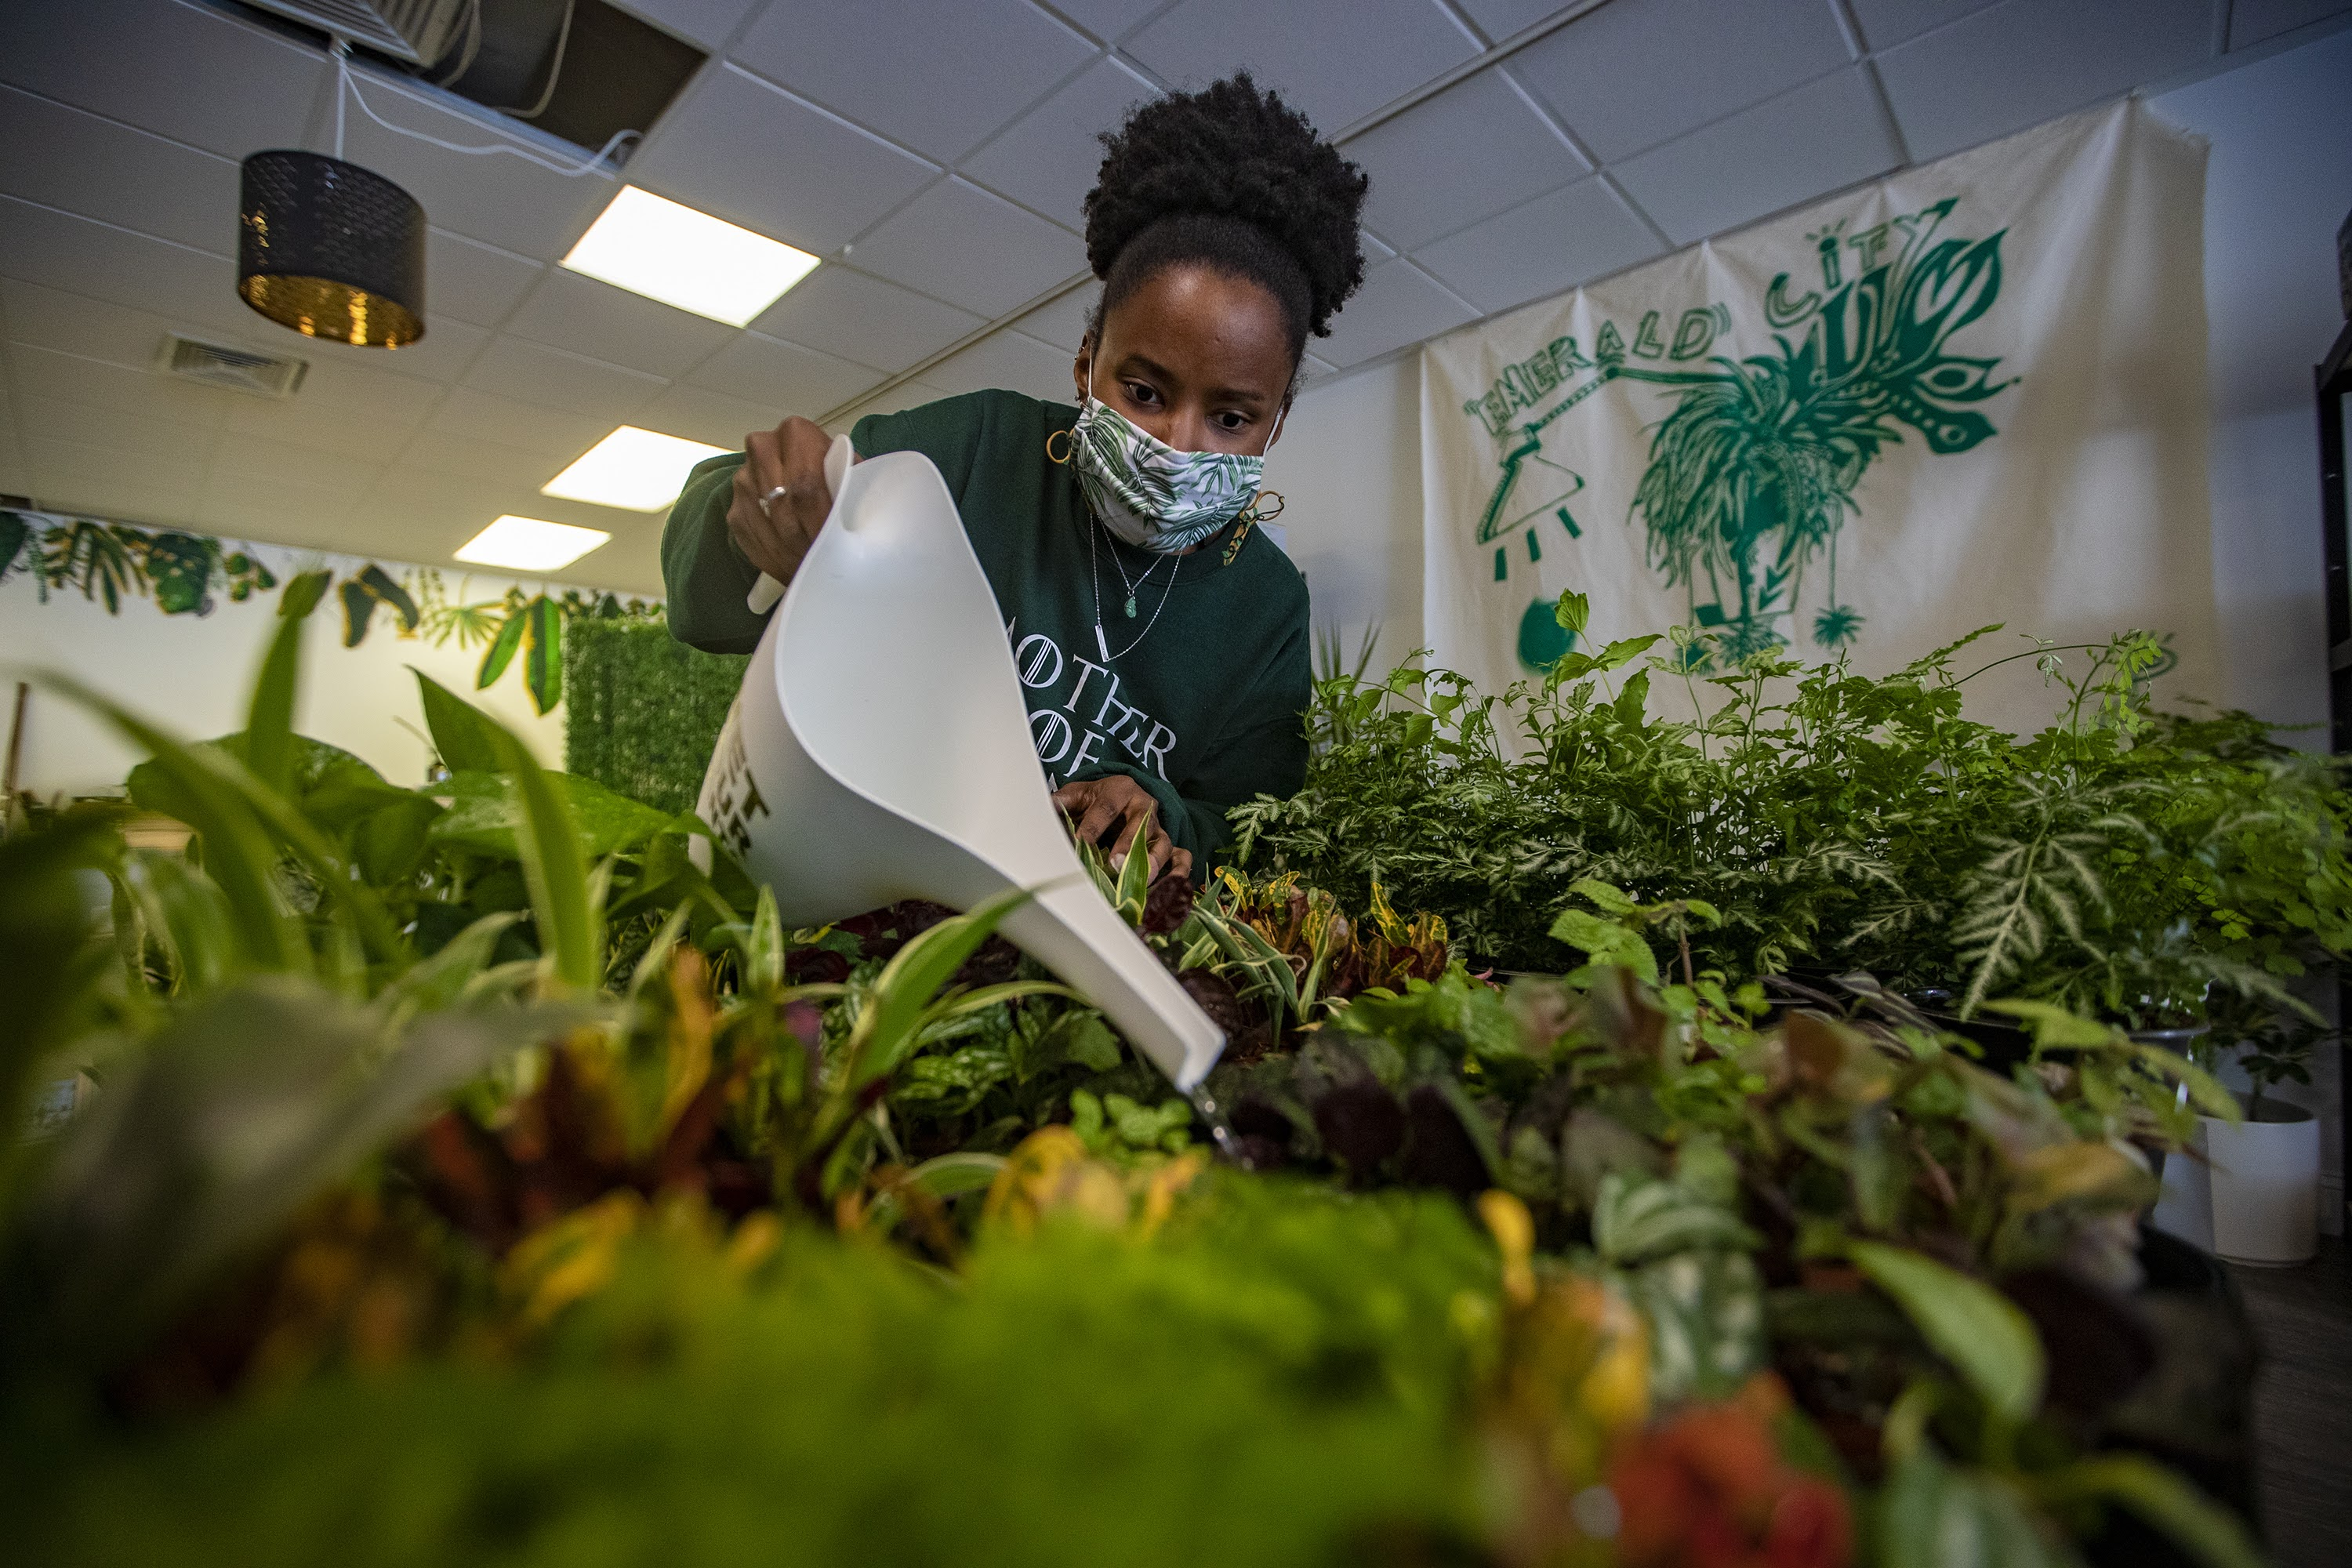 Quontay Turner watering plants at the Emerald City Plant Shop in Norwood. (Jesse Costa/WBUR)